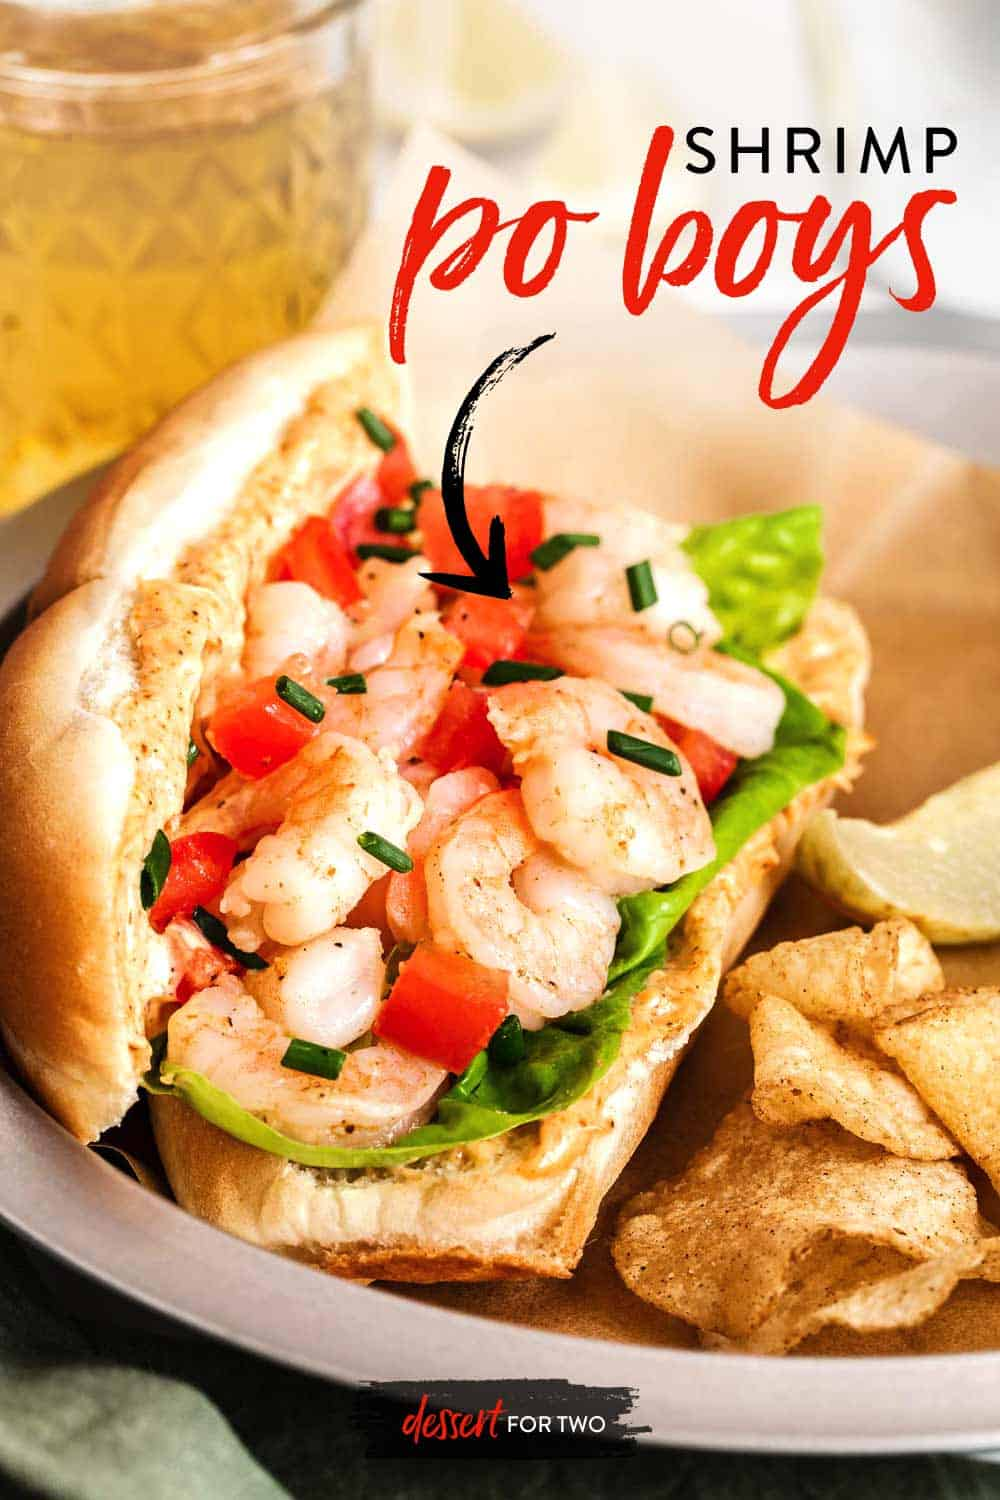 Close up of shrimp po boy sandwich with chips.